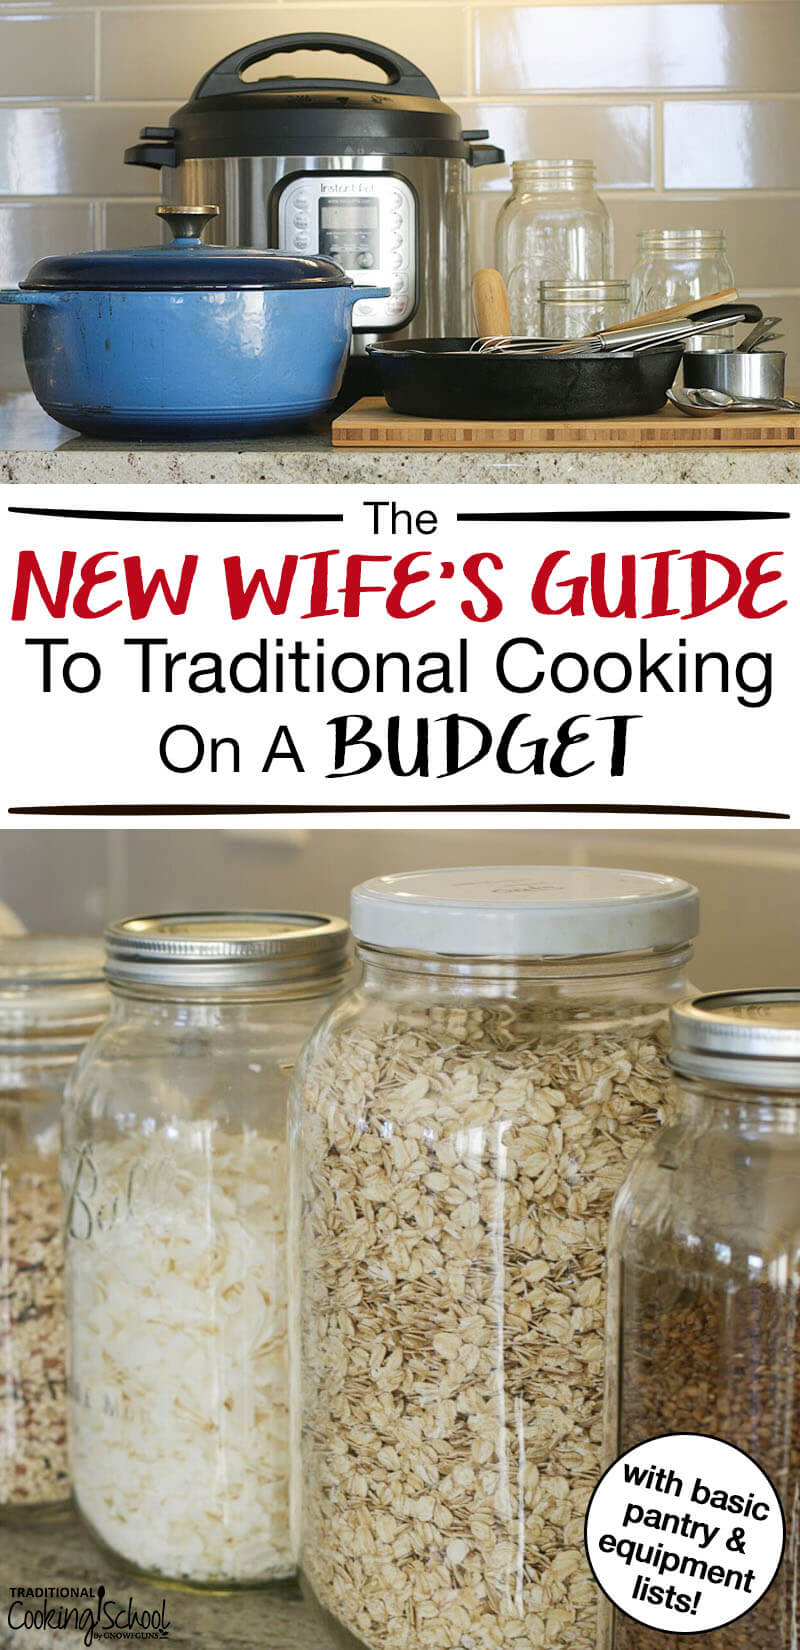 "photo collage of kitchen tools and pantry items, including an Instant Pot, Dutch oven, and Mason jars of shredded coconut and oats, with text overlay: ""The New Wife's Guide To Traditional Cooking On A Budget"""